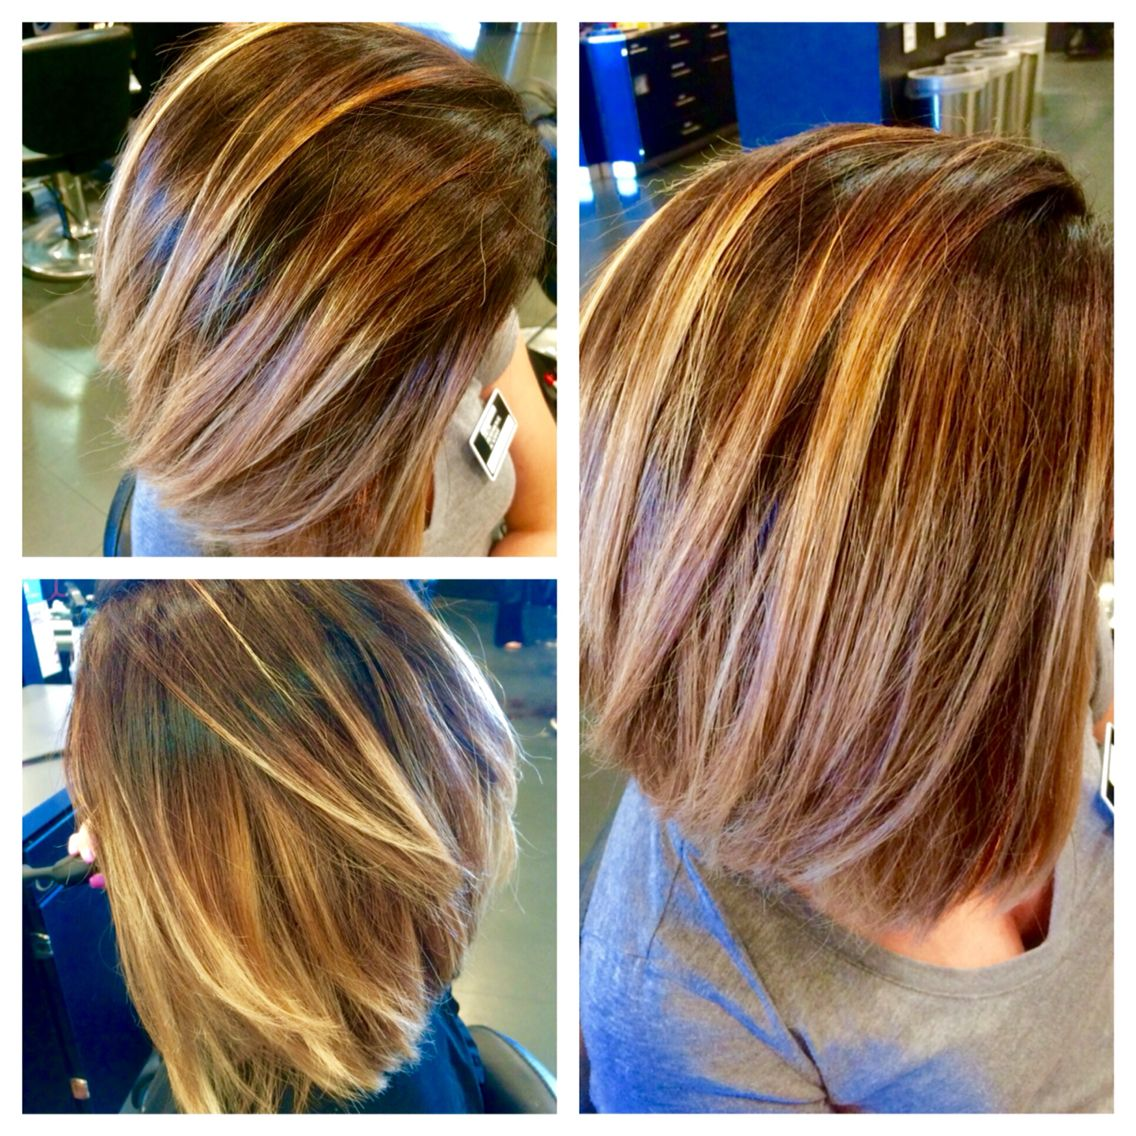 Balayaged ombré on this adorable short cut! Done by Carly Cammisa